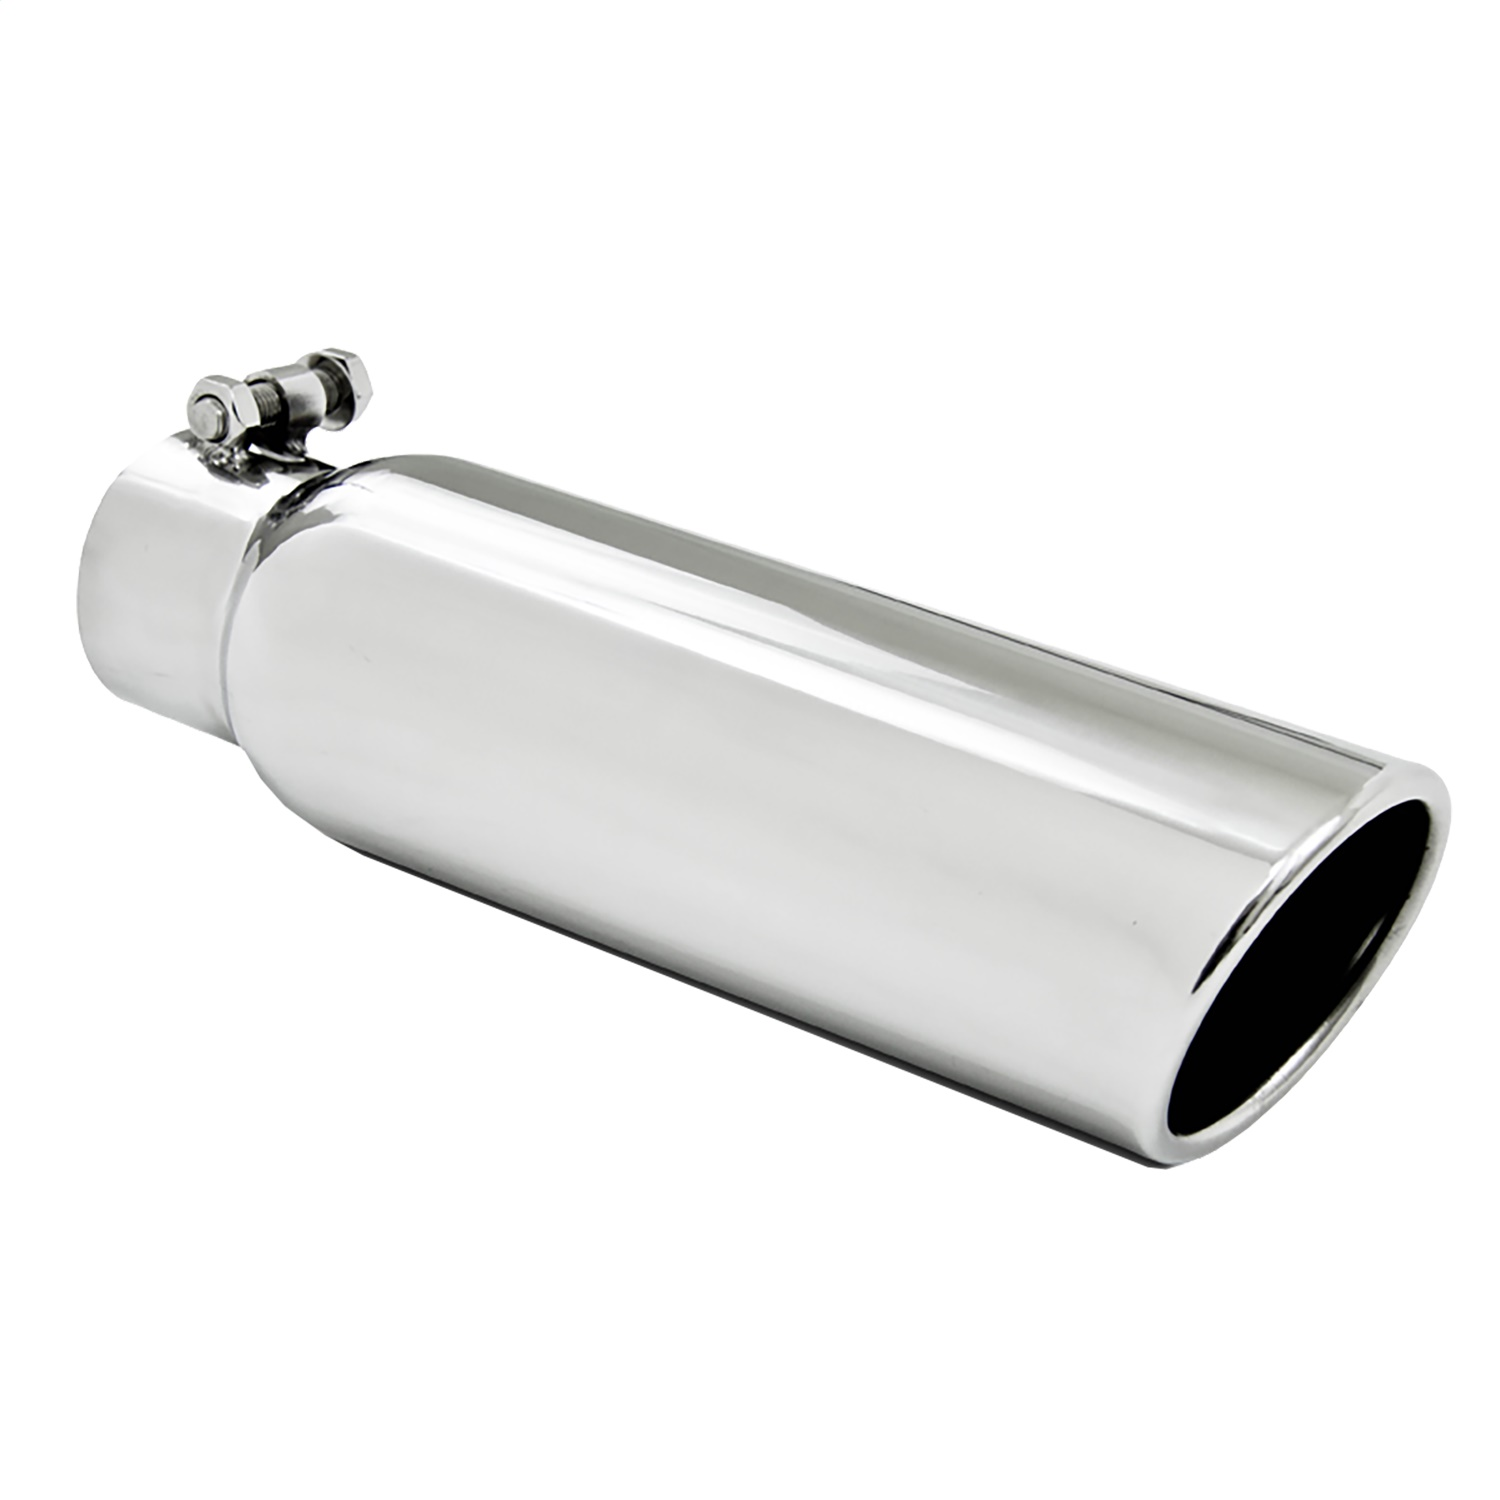 MBRP Exhaust Exhaust Tail Pipe Tip (T5148)